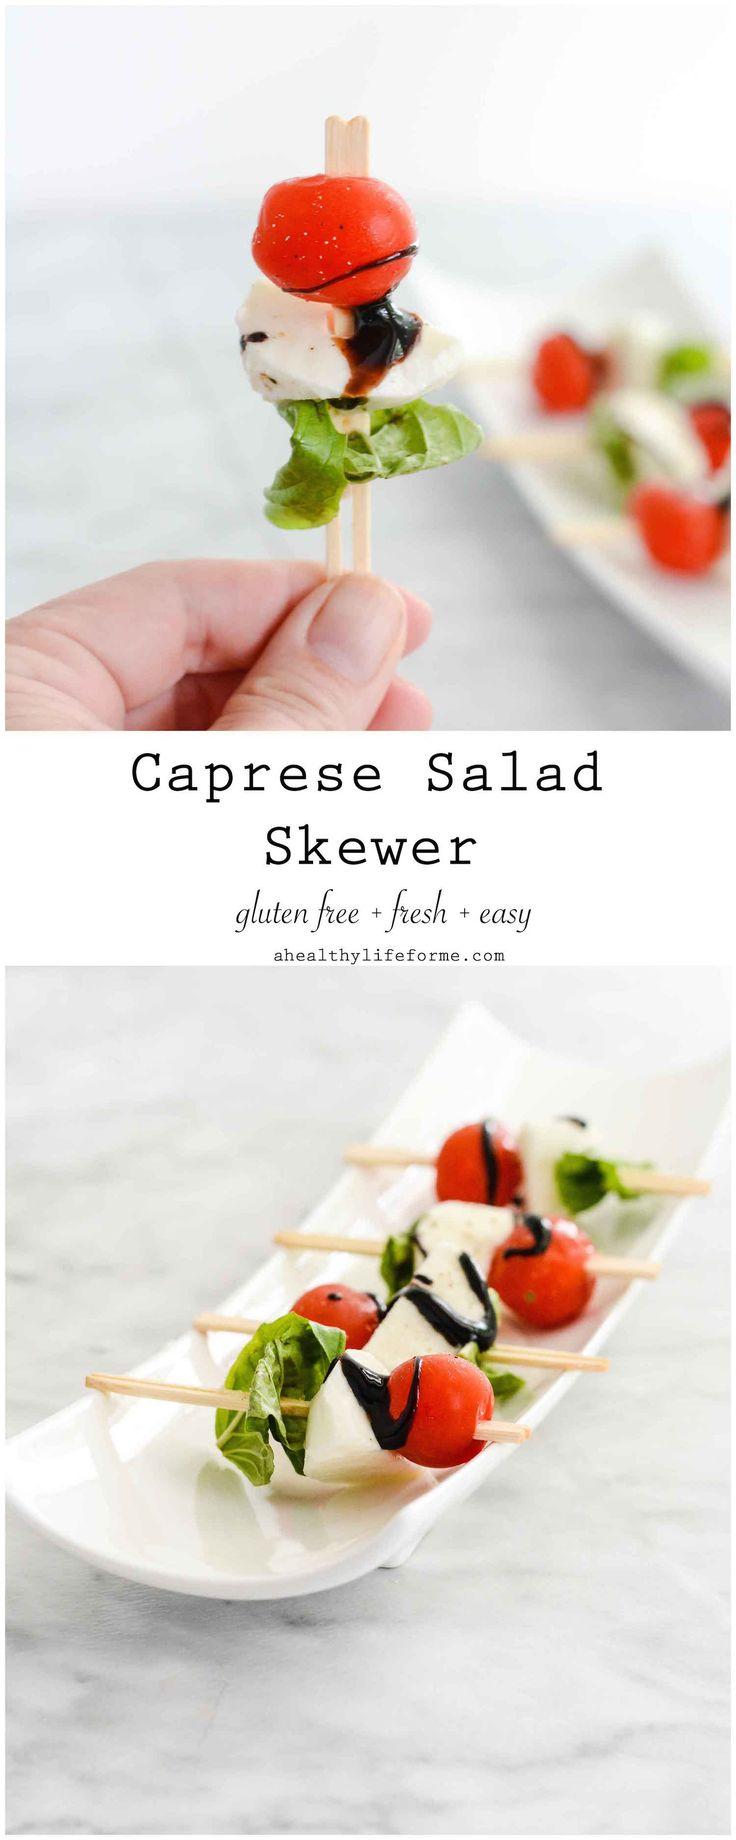 Caprese Salad Skewers are the perfect fresh, delicious, and easy appetizer to serve at a dinner party or to the family on a warm summer evening. - A Healthy Life For Me